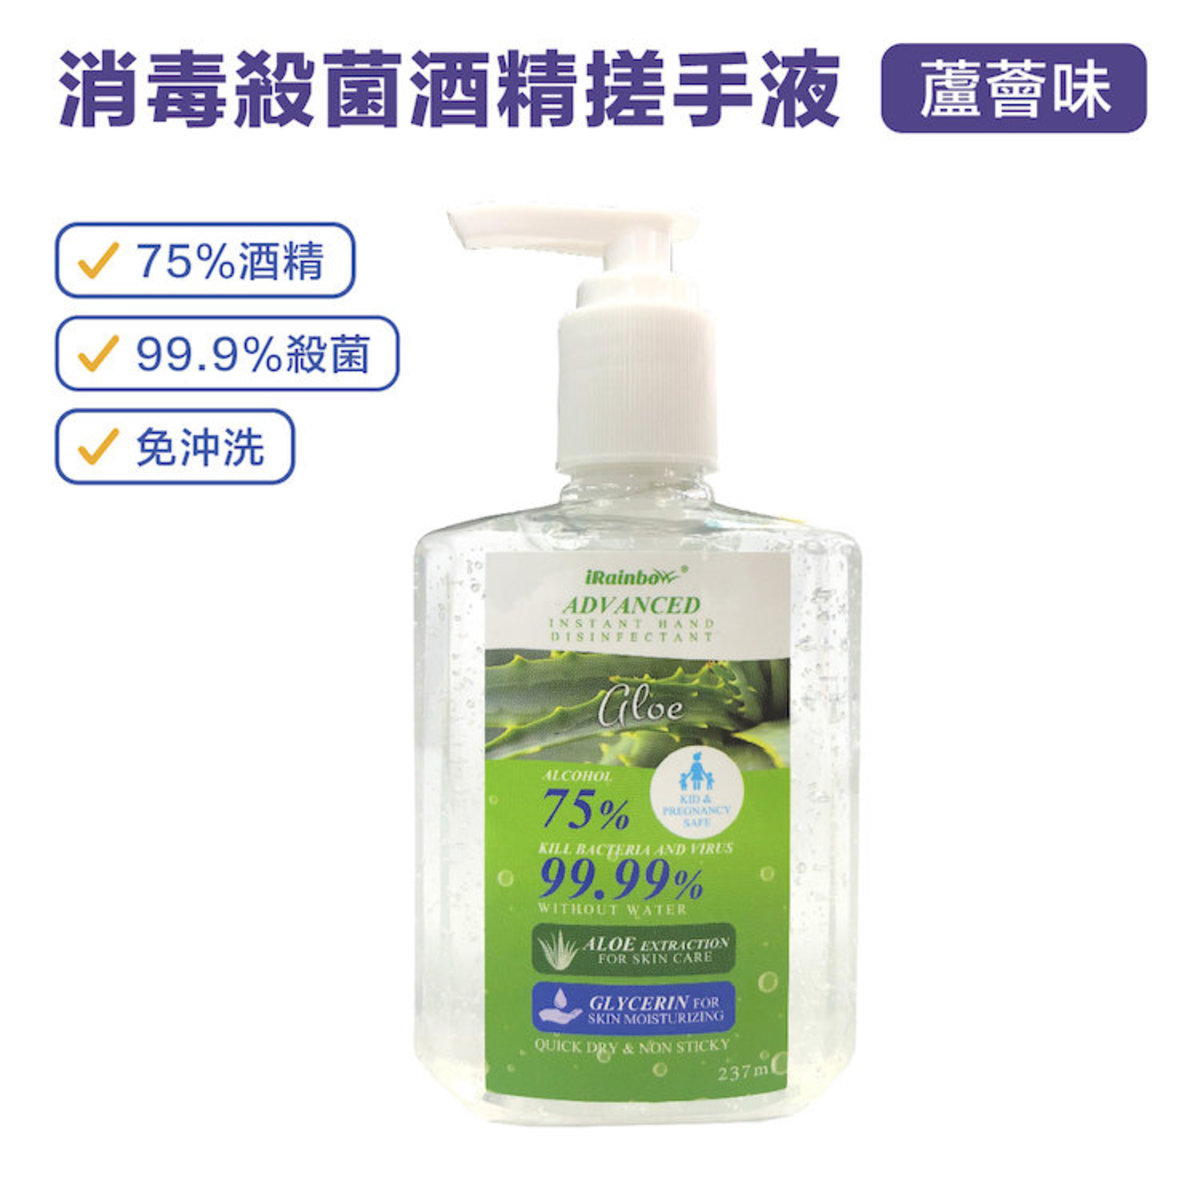 75%Alcohol instant Hand disinfectant(237ml)-Aloe